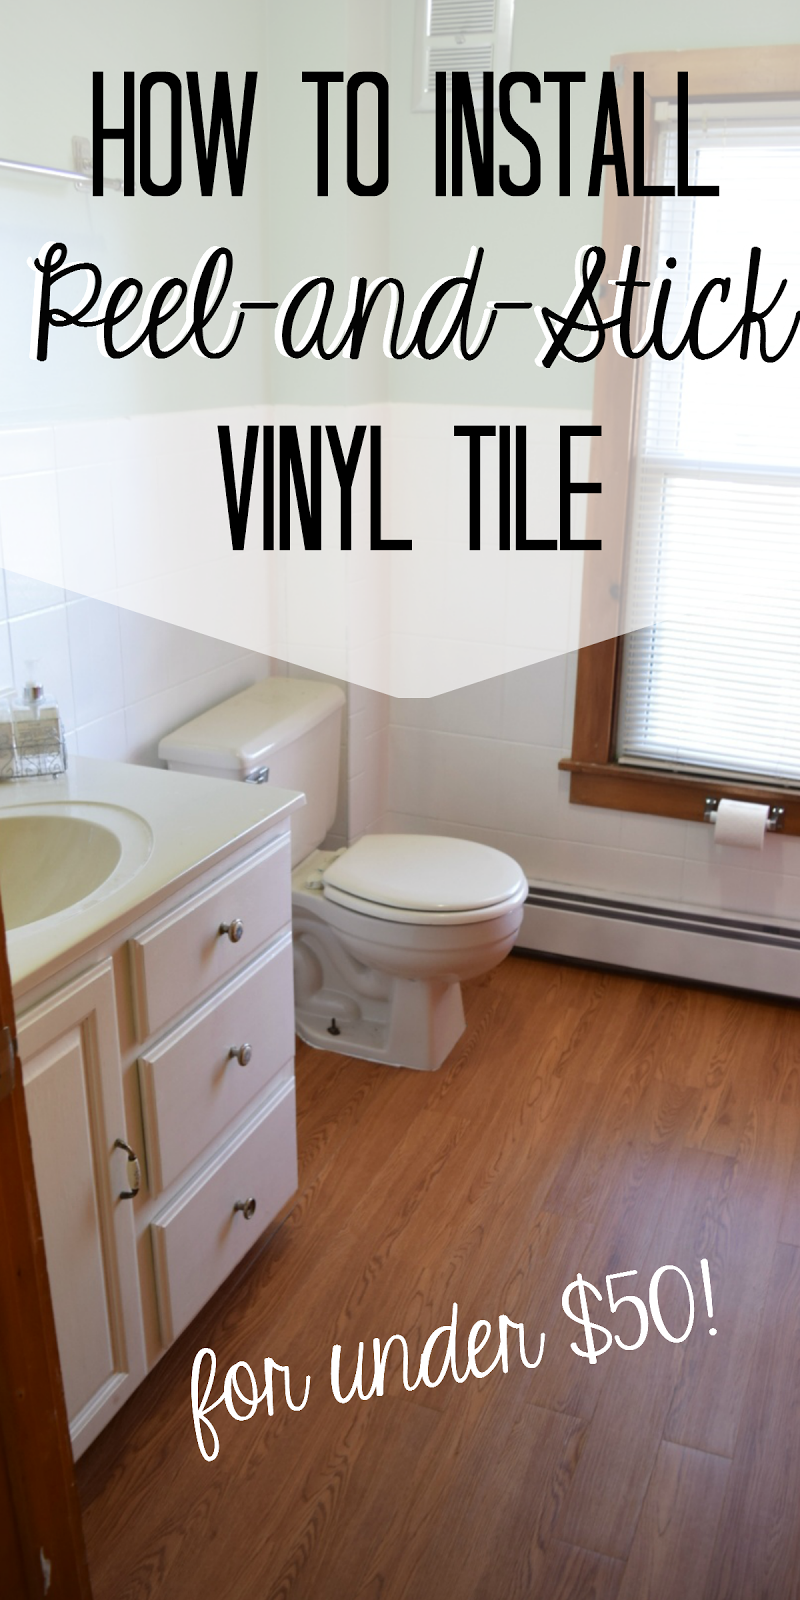 See The Last Step In Our DIY Bathroom Remodel   How To Install  Peel And Stick Vinyl Floor Planks To Give Your Bathroom An Easy And  Affordable Update!